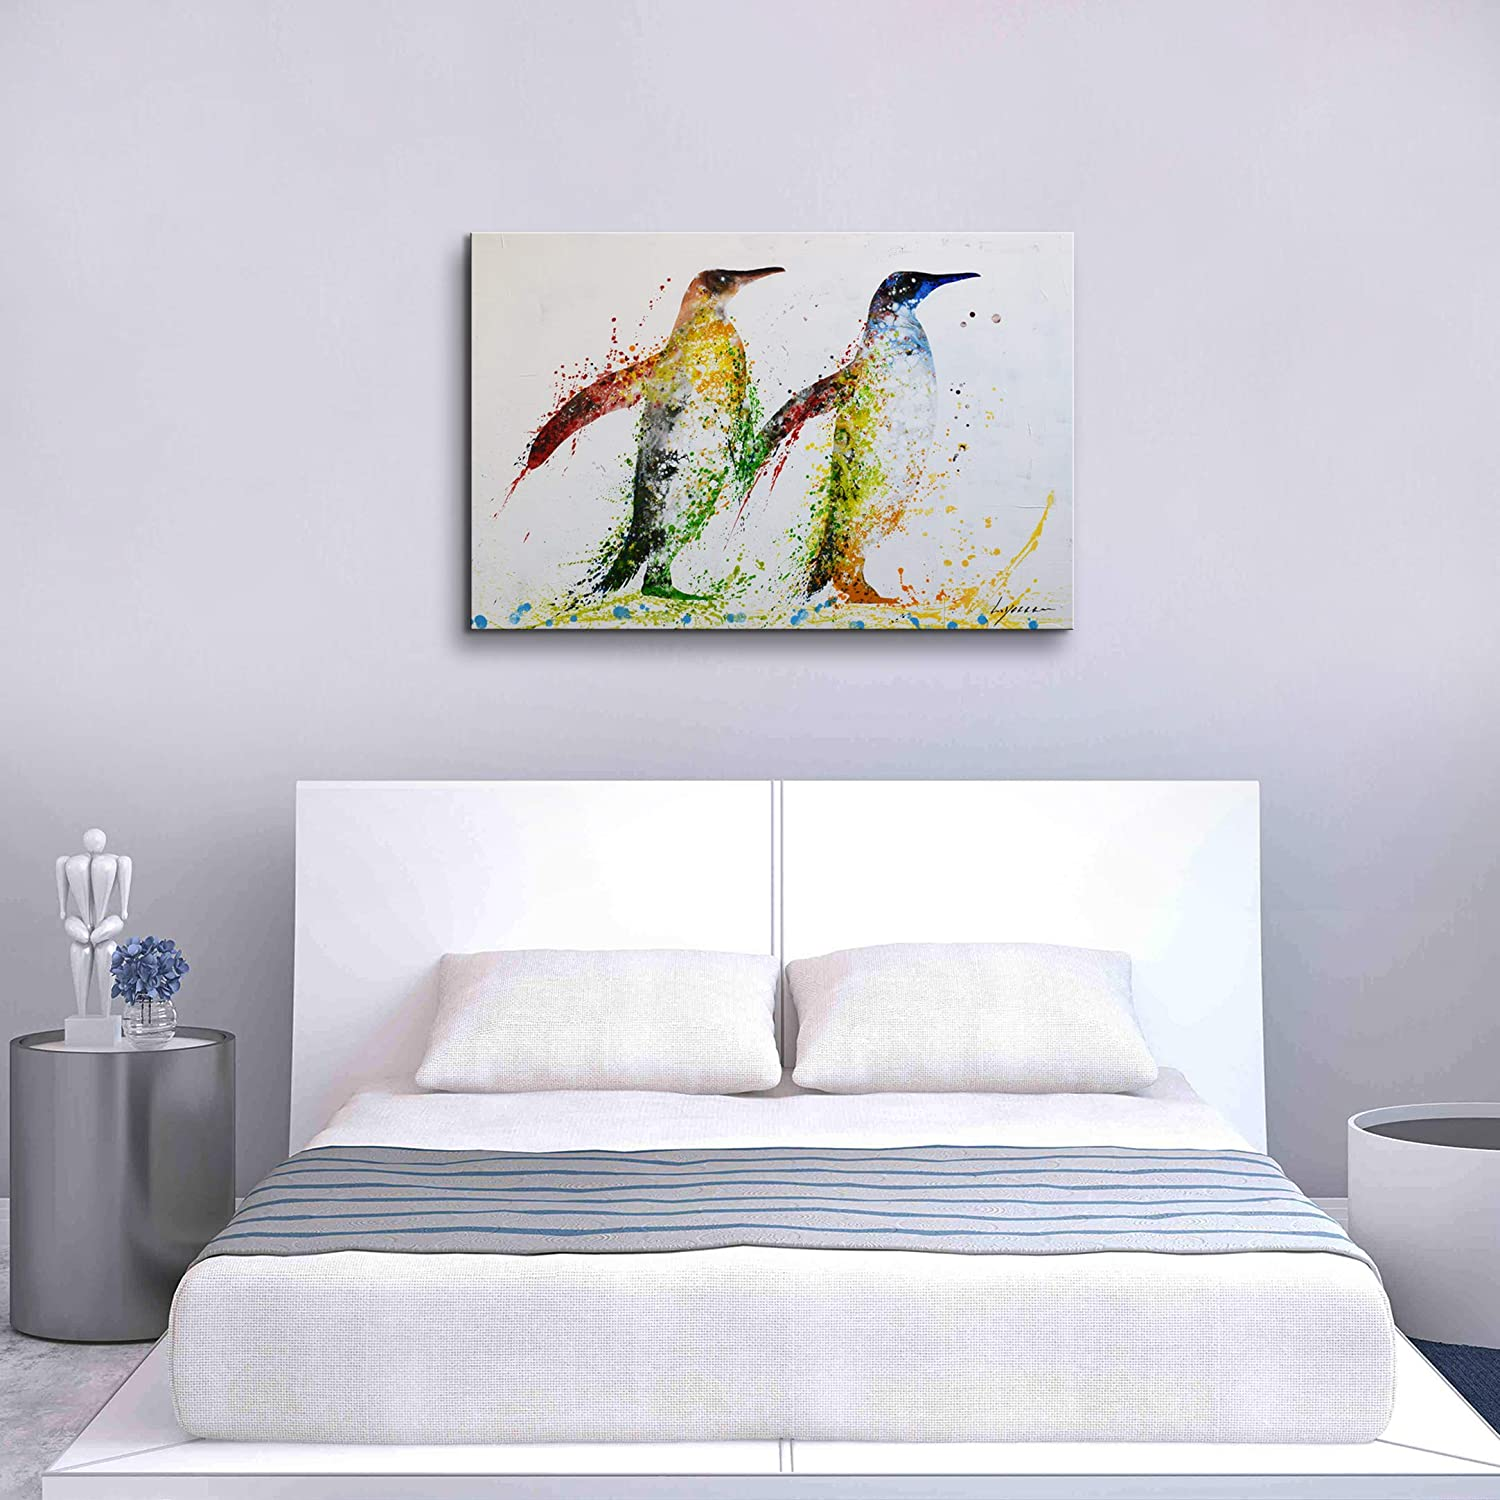 Colorful Animal Wall Art for Living Room Hand-Painted Artwork 24x36inch Penguin Framed Animal Oil Painting on Canvas Wall Art Set for Bedroom Childrens Room Gallery-Wrapped Wall Decor Ready To Hang